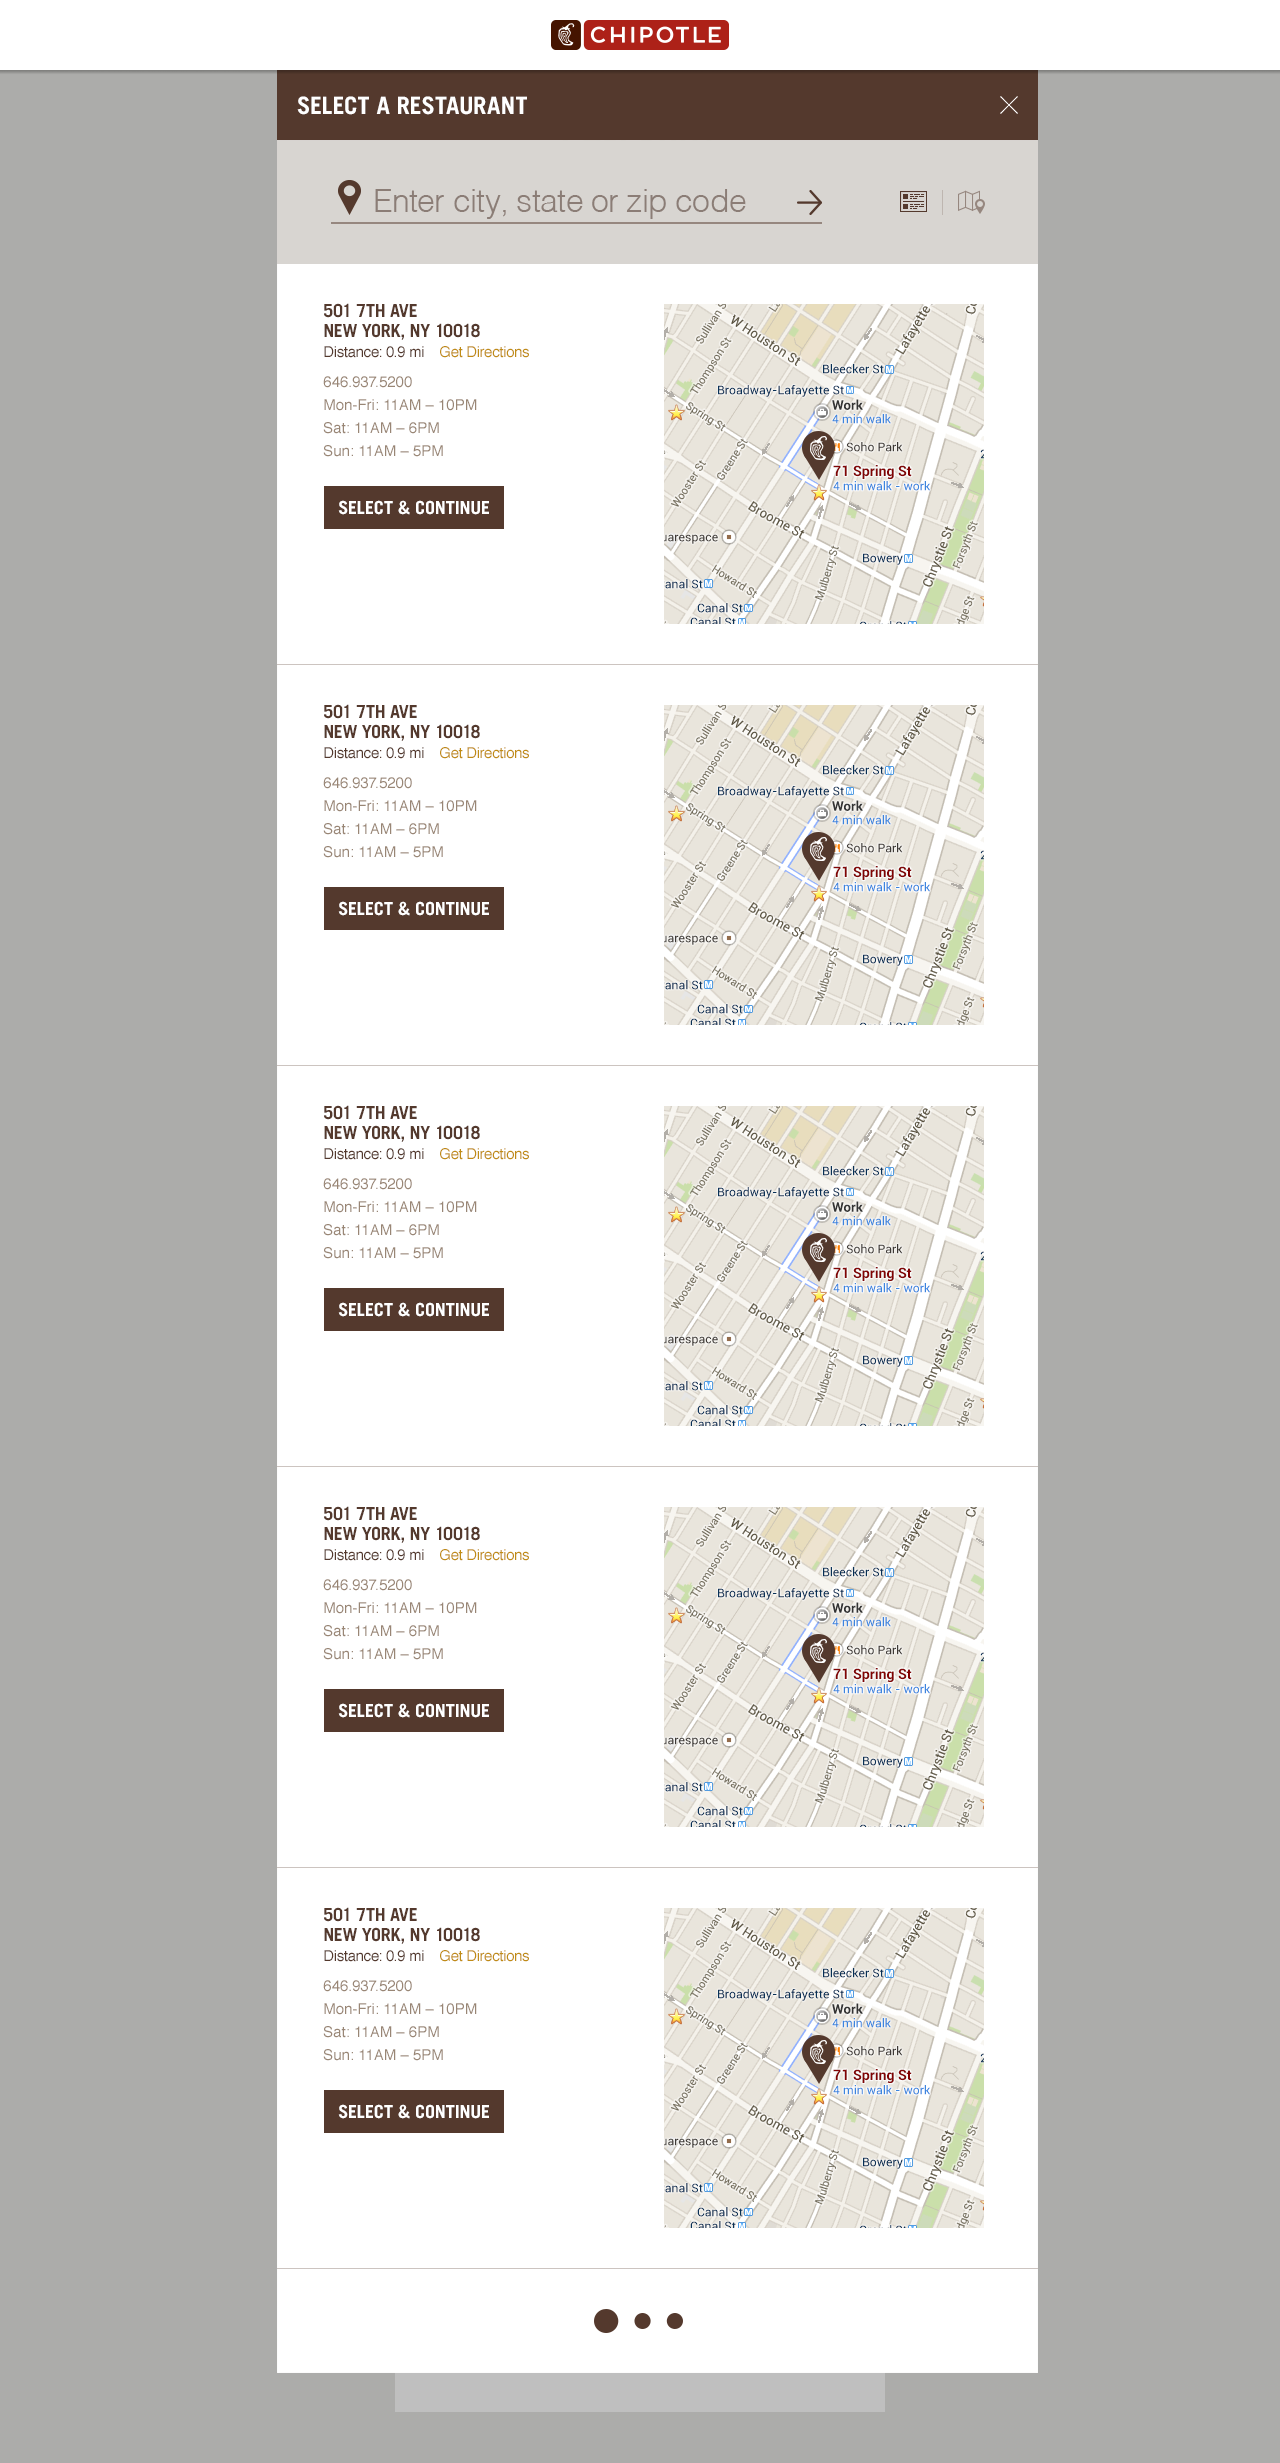 4_ROO_GroupOrder_Checkout_Full_Restaurant_Modals_List_Tablet_Size.png